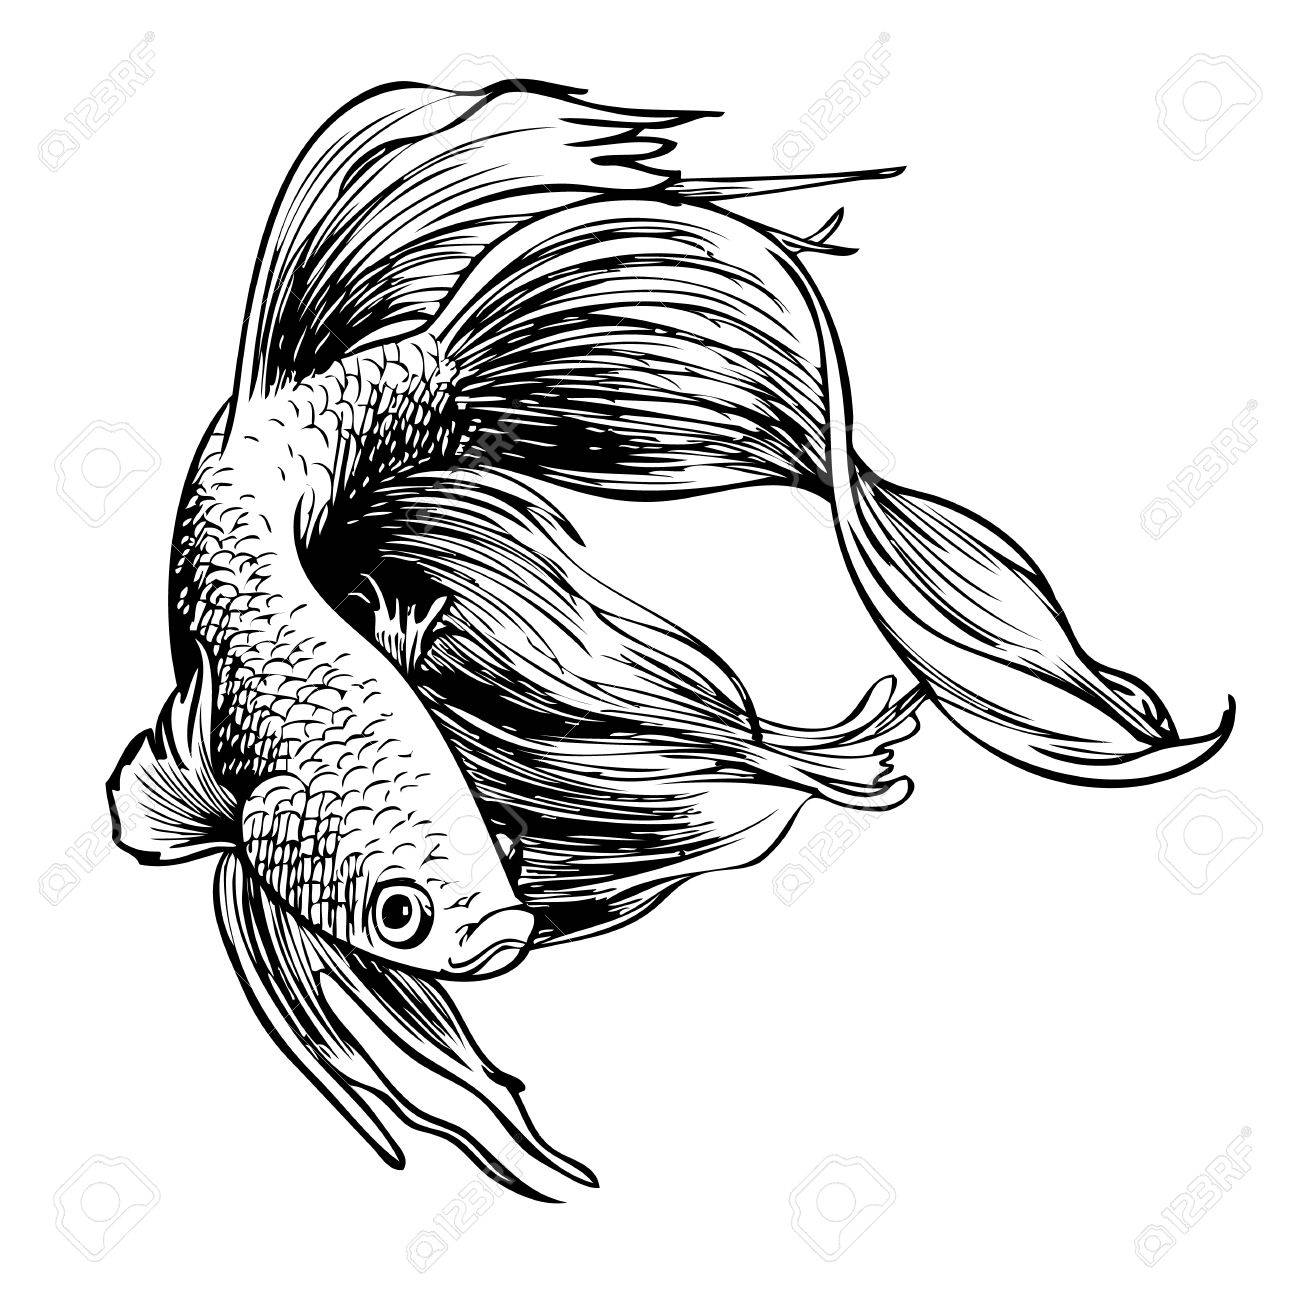 1300x1300 Freehand Sketch Illustration Of Betta Splendens, Siamese Fighting